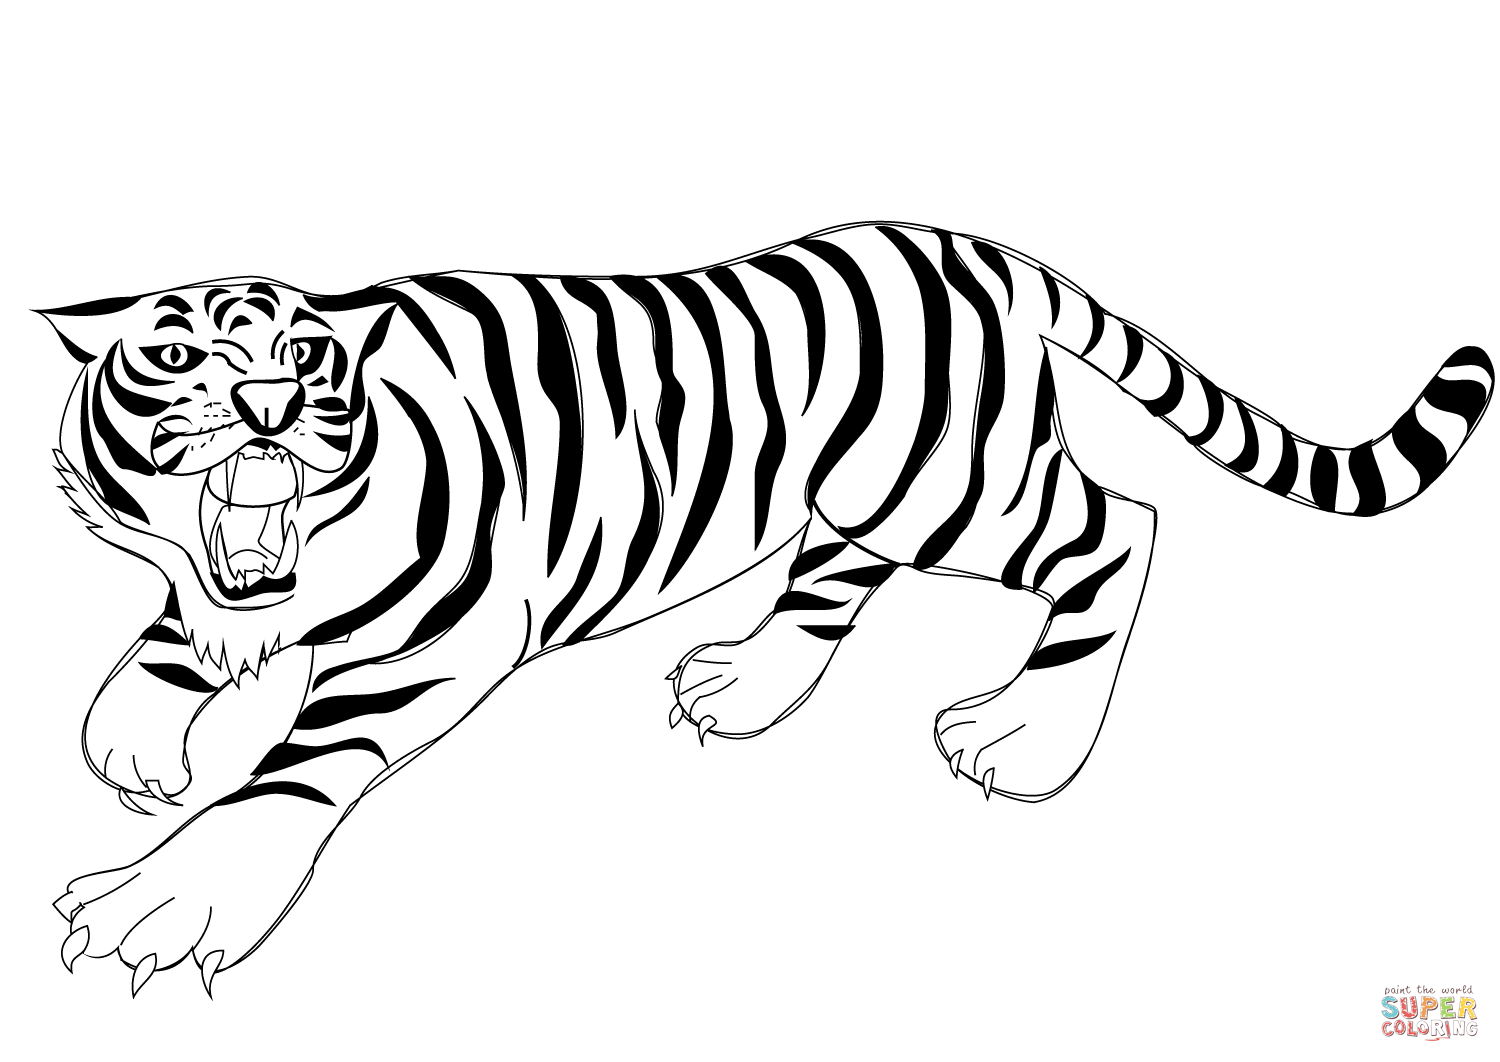 Tiger outlinecoloring page clipart best for Coloring pages of tiger